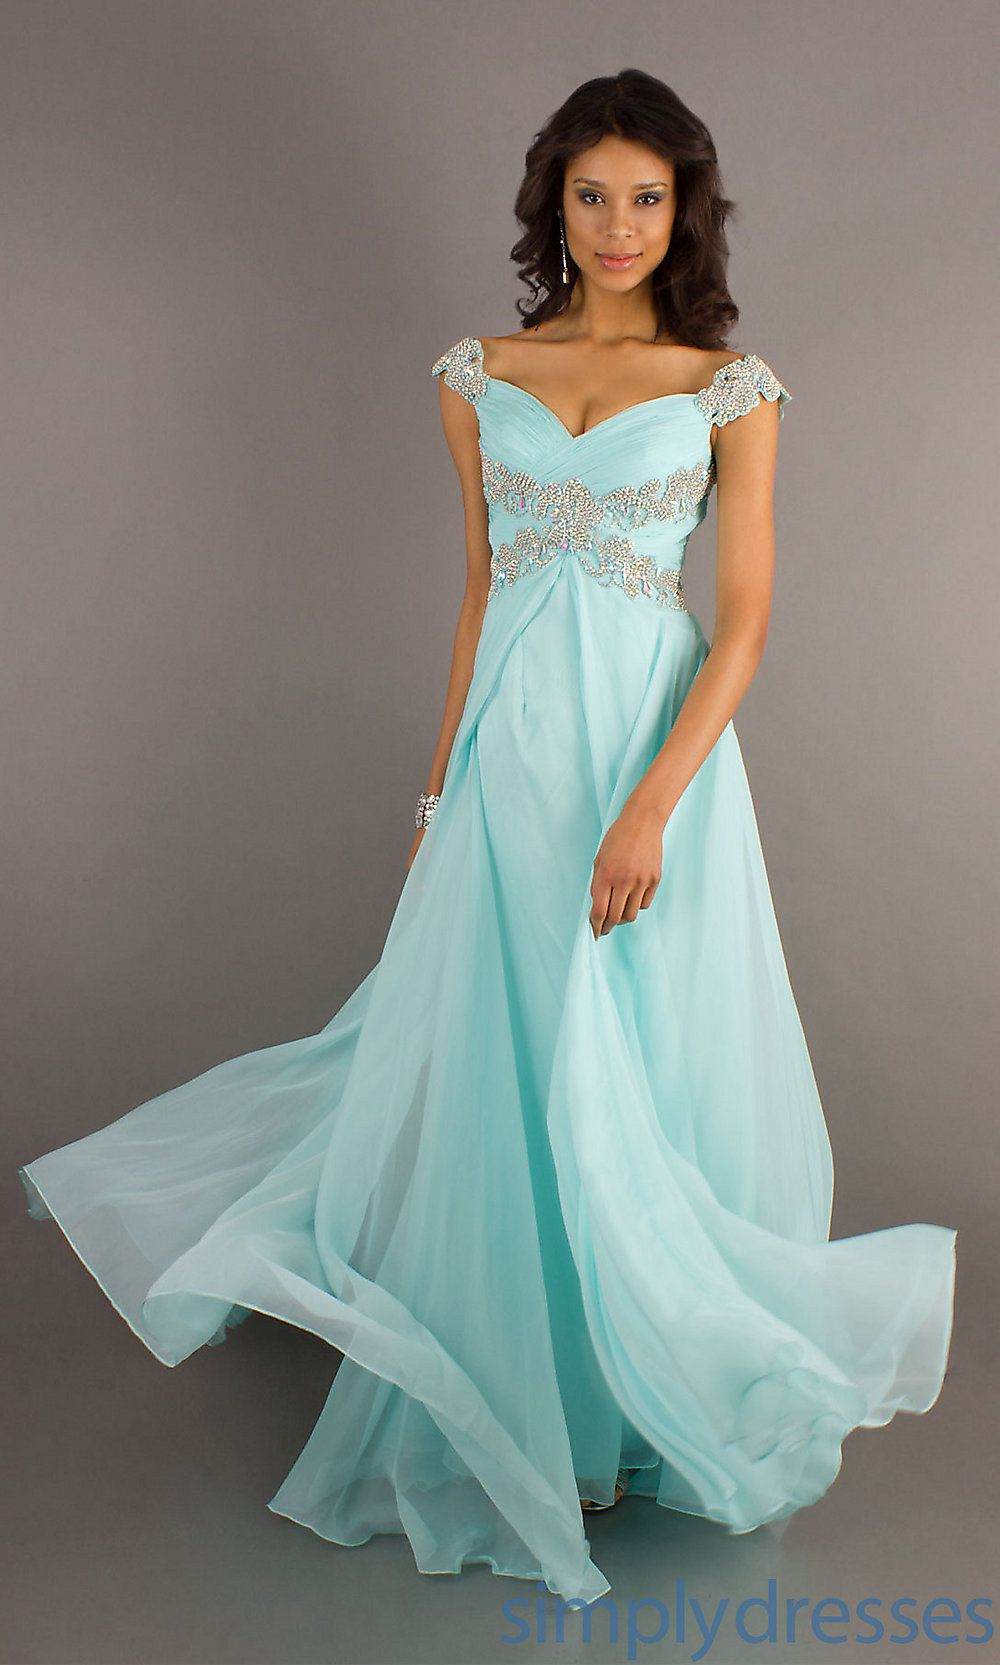 Possible Senior recital dress??? | My Style | Pinterest | Recital ...